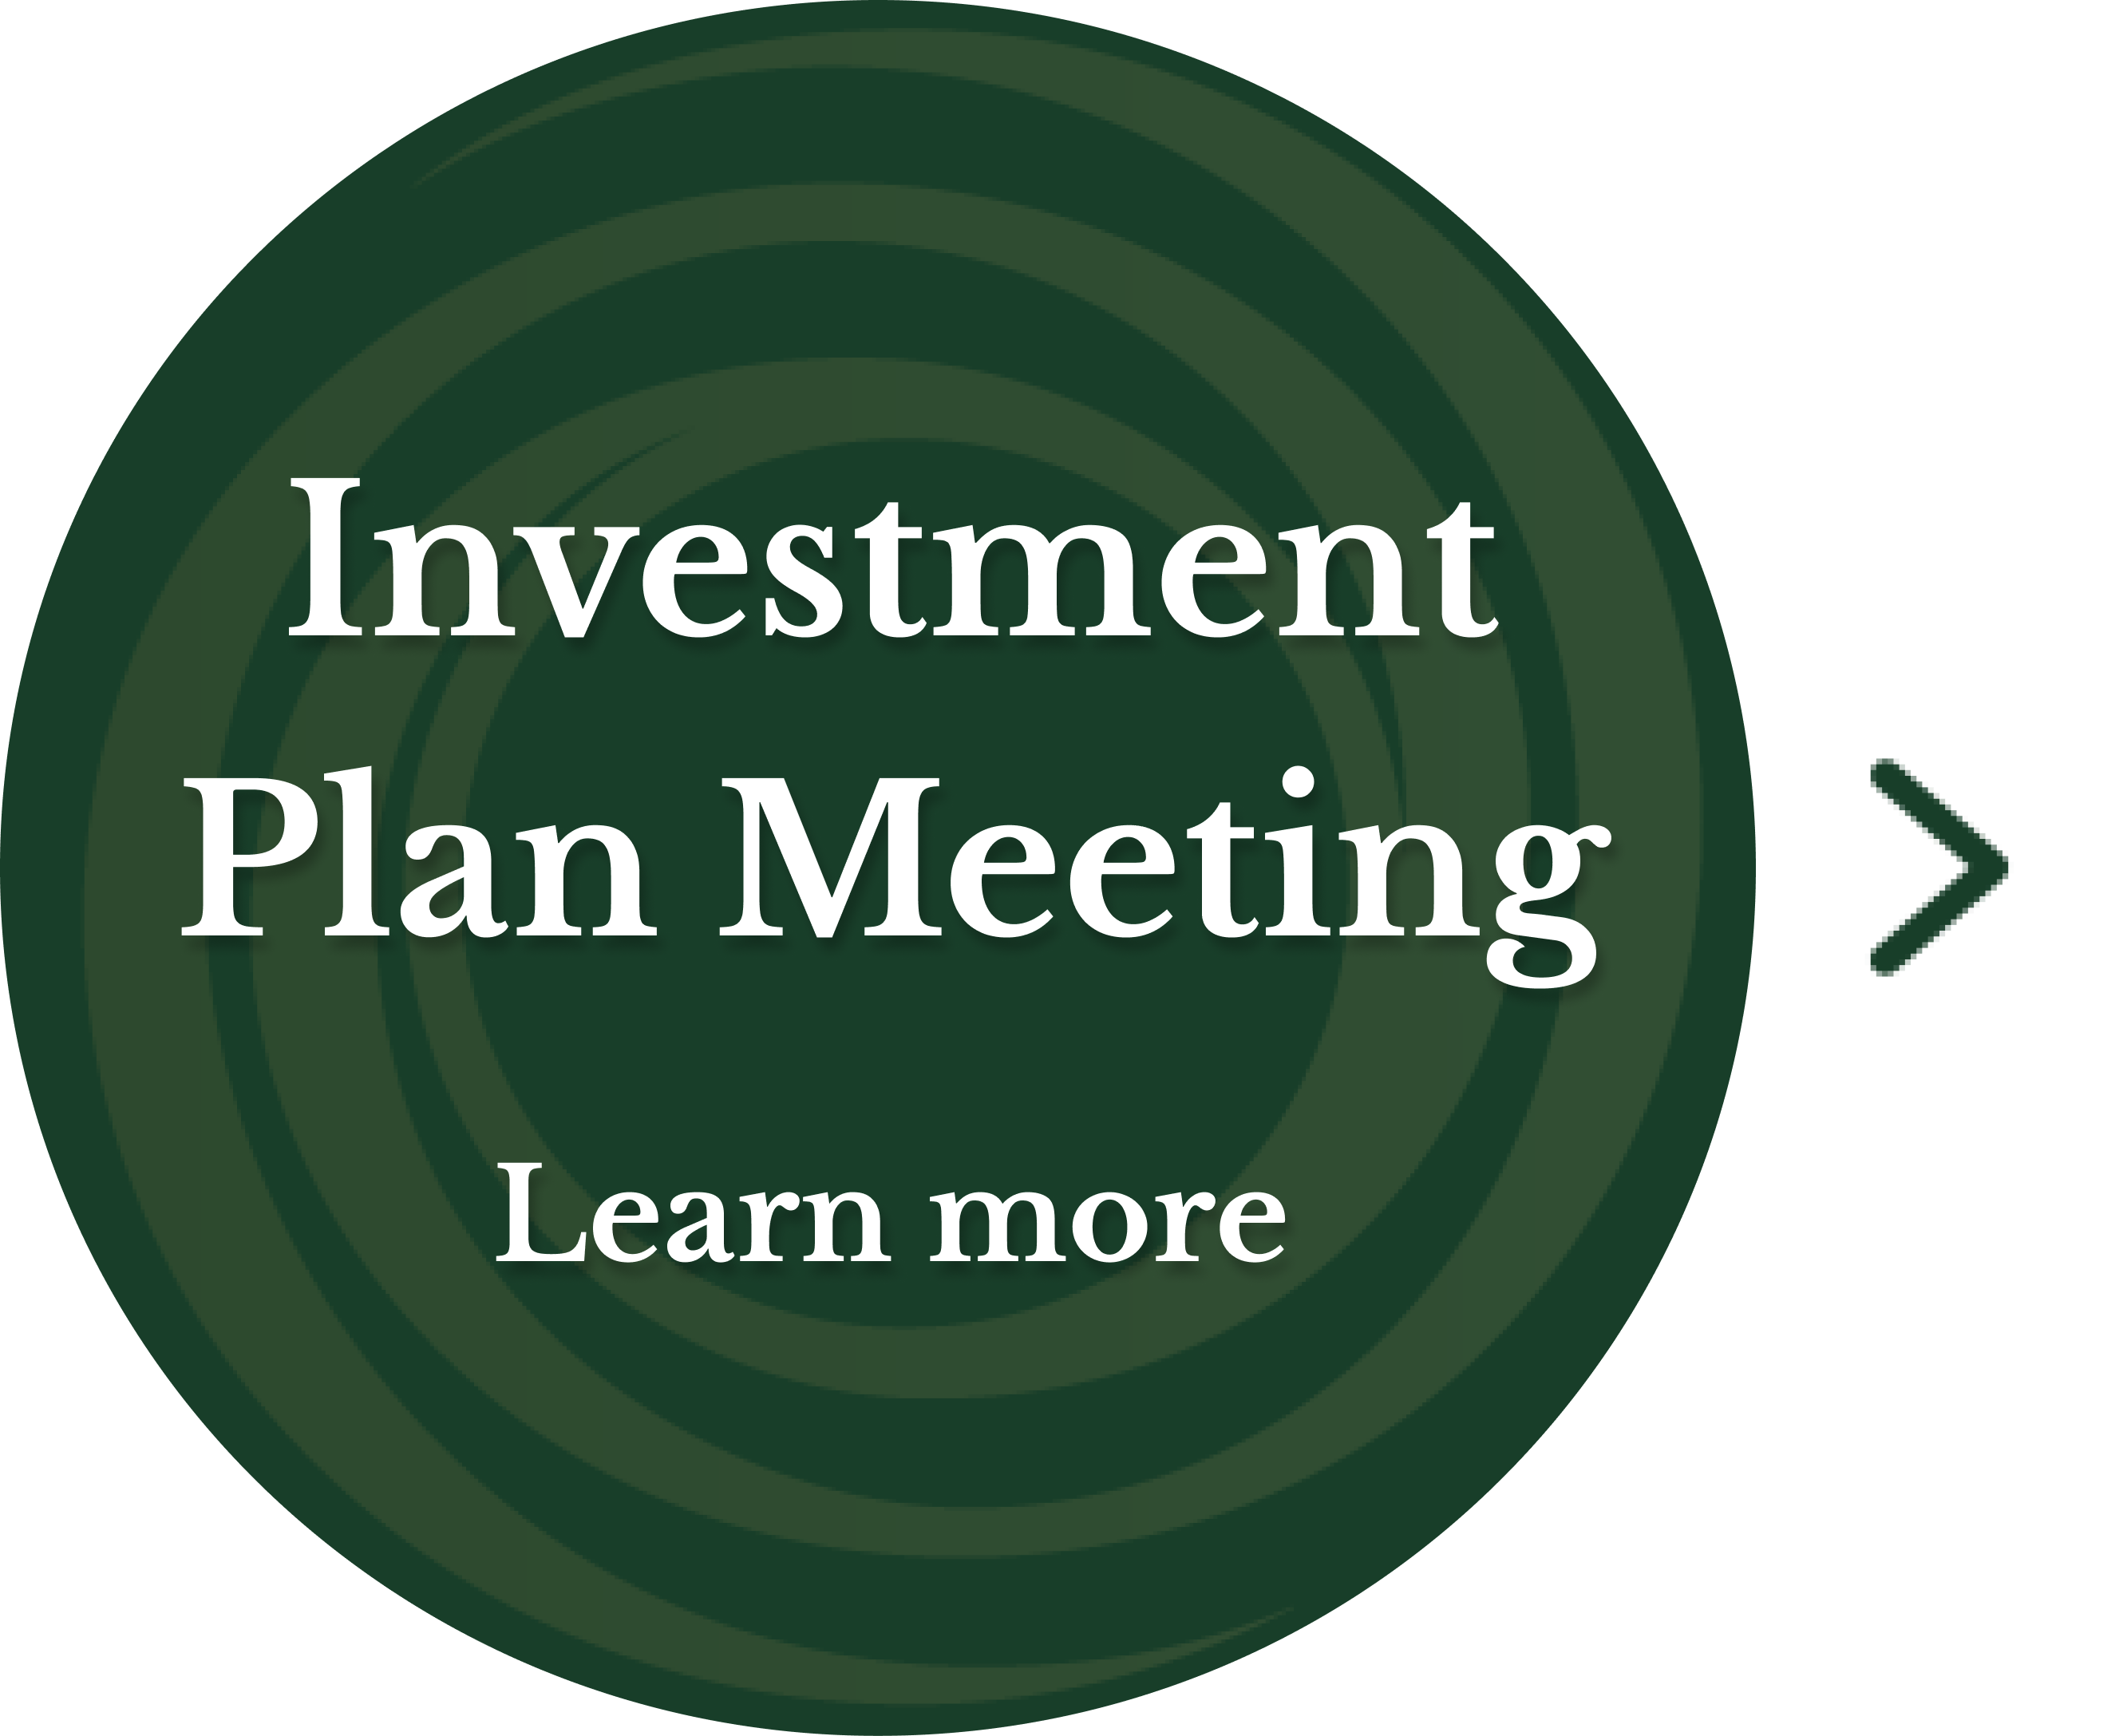 For Investment Plan Meeting details click here